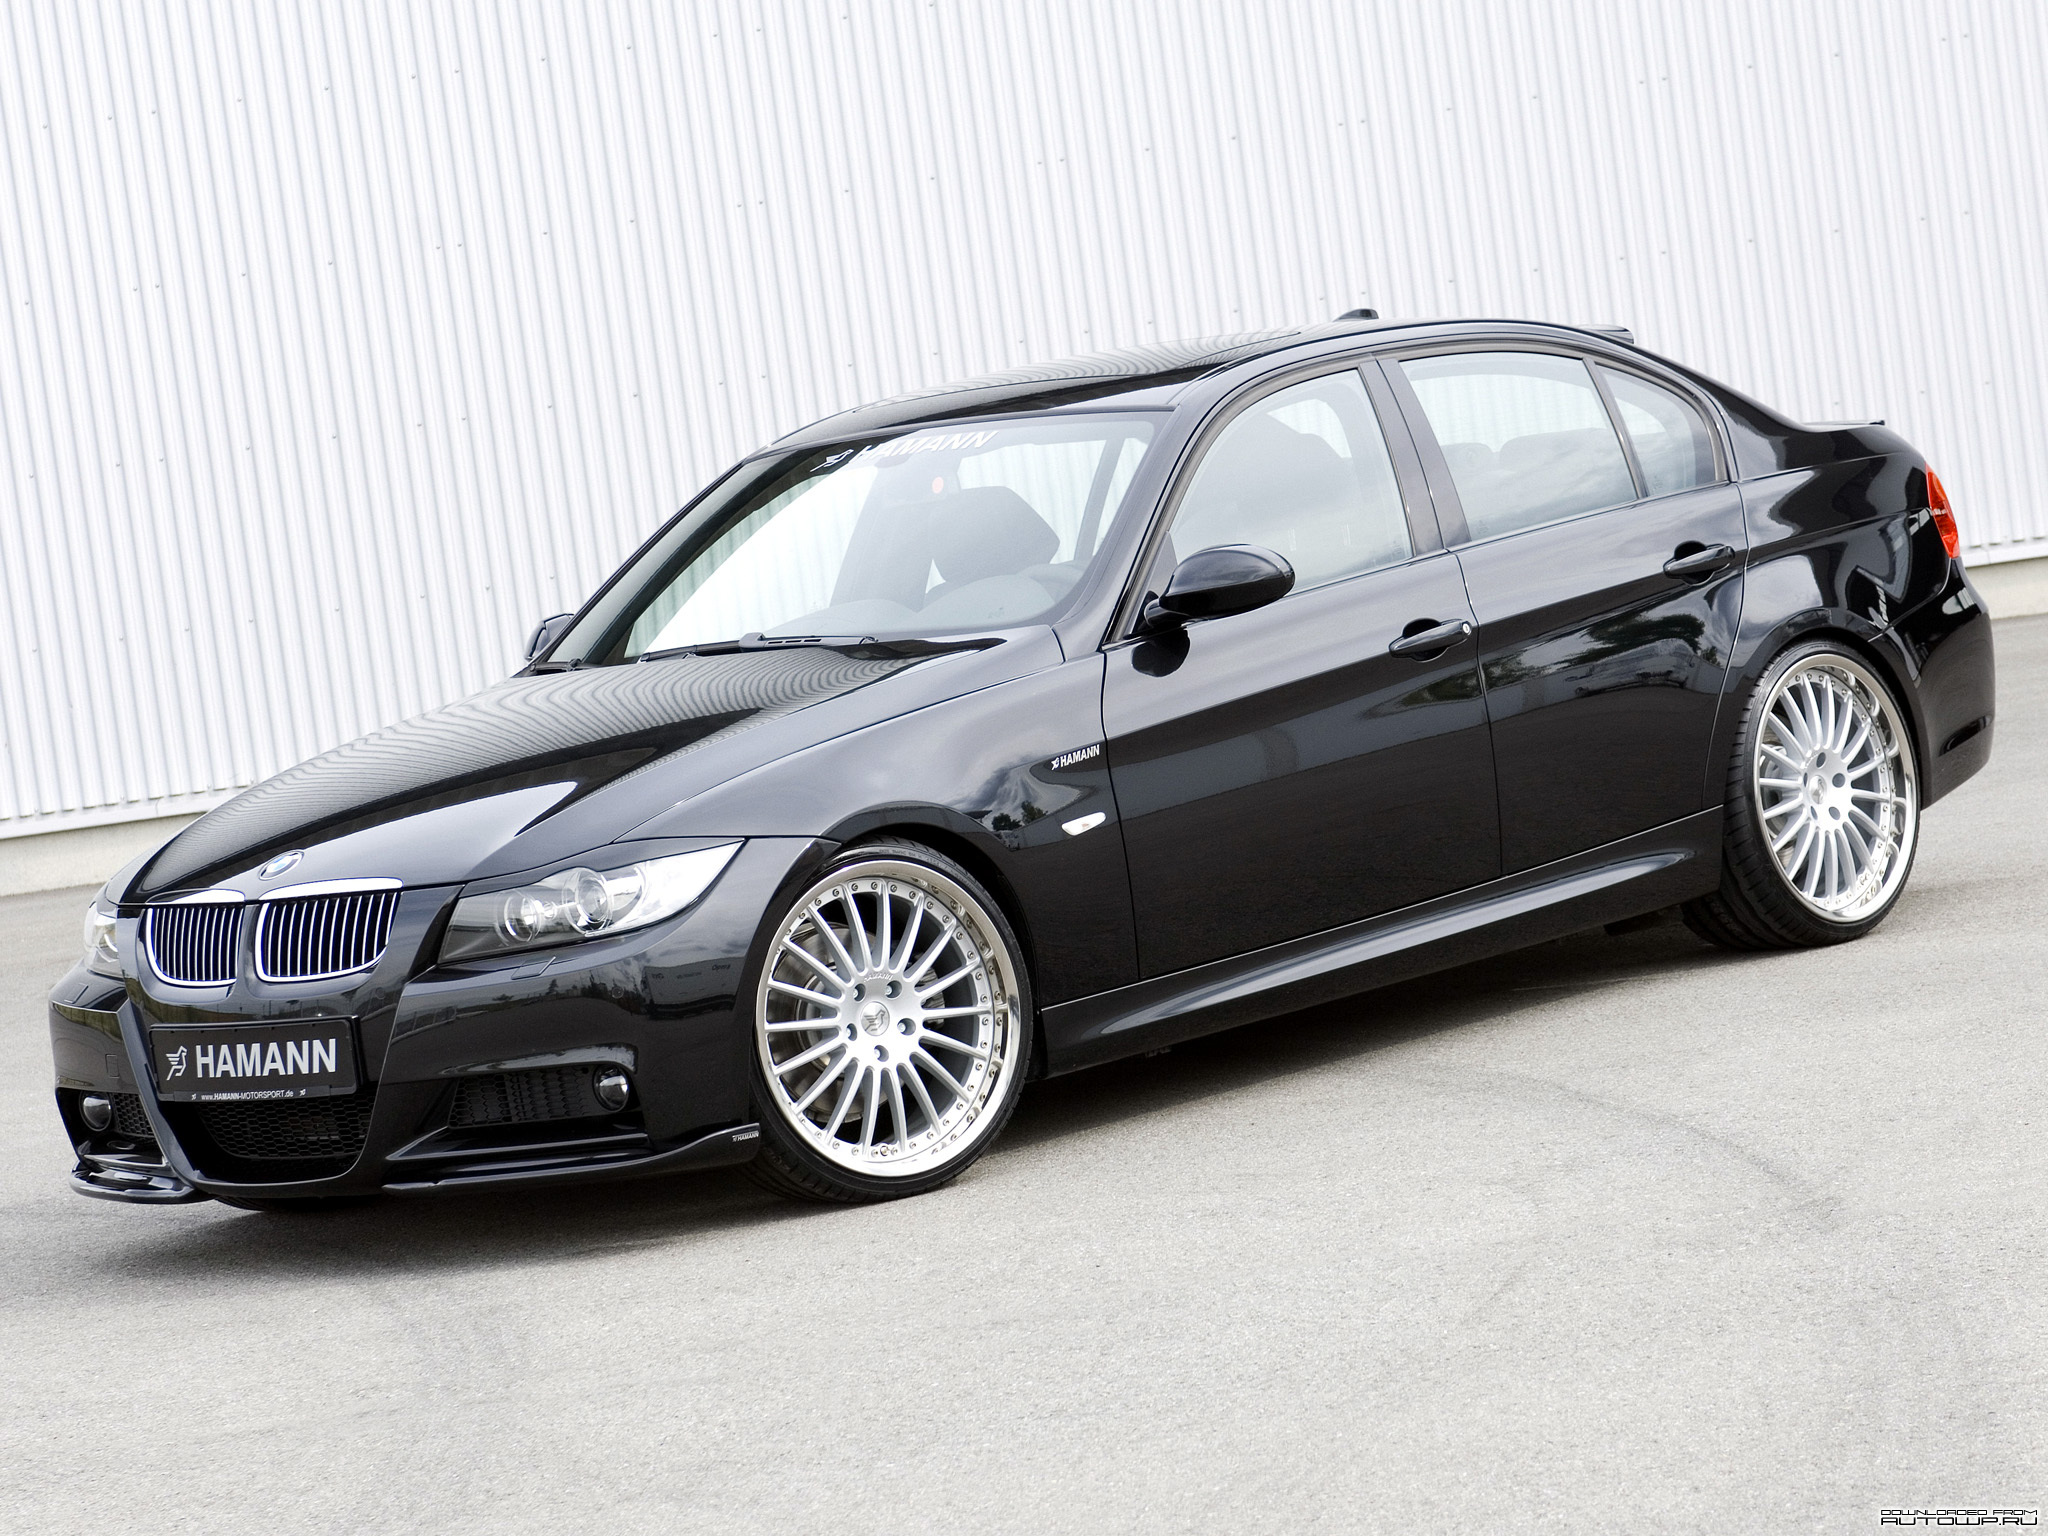 3dtuning Of Bmw 3 Series Sedan 2005 3dtuning Com Unique